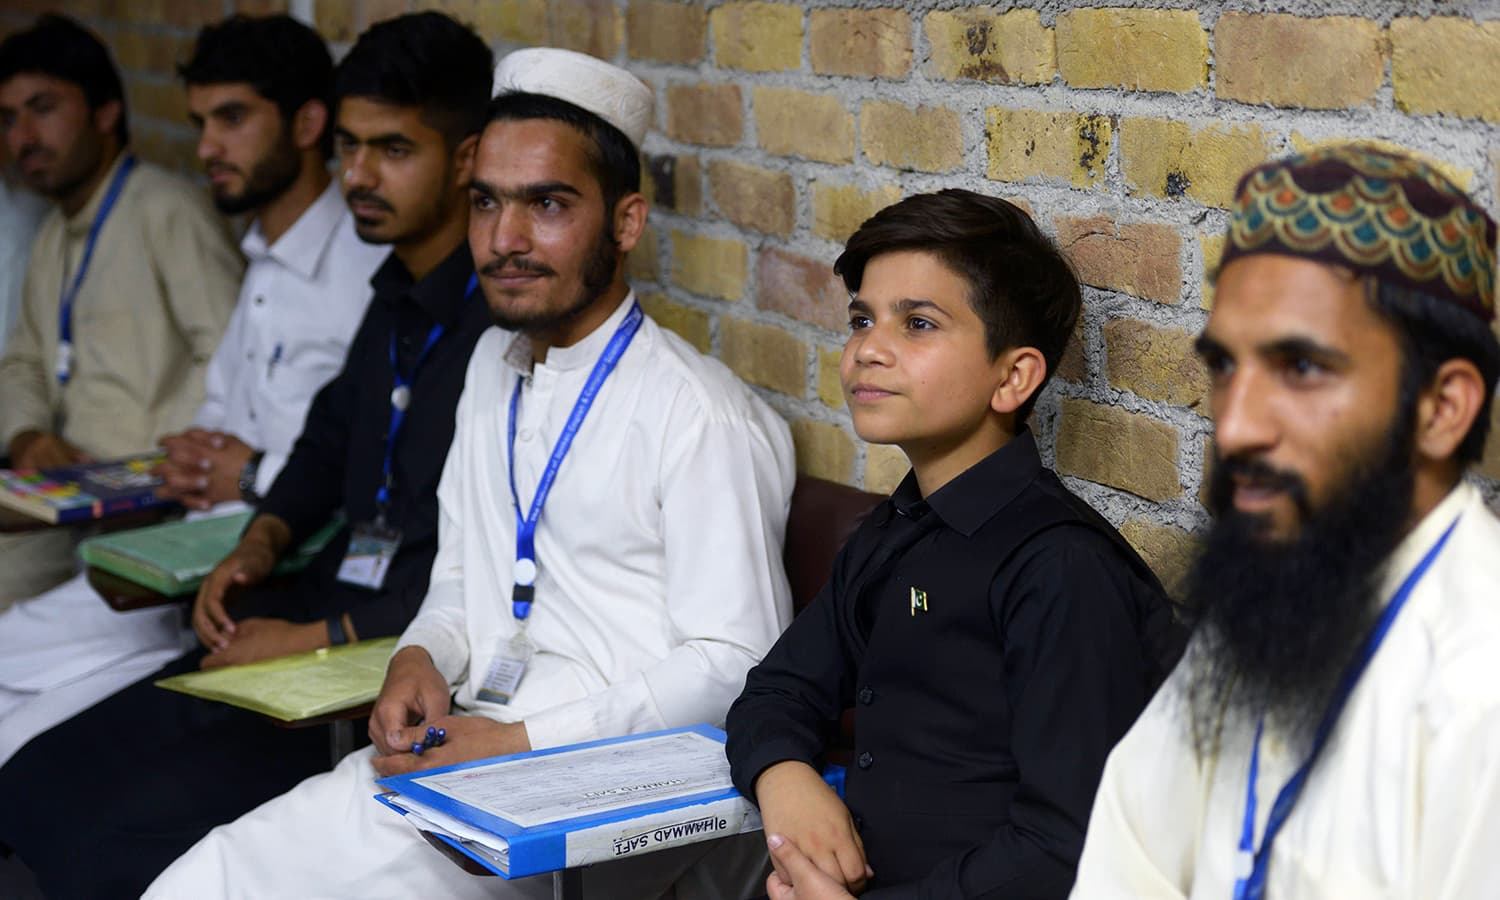 Hammad Safi (2nd R) attends an English language class at a languages academy in Peshawar. — AFP